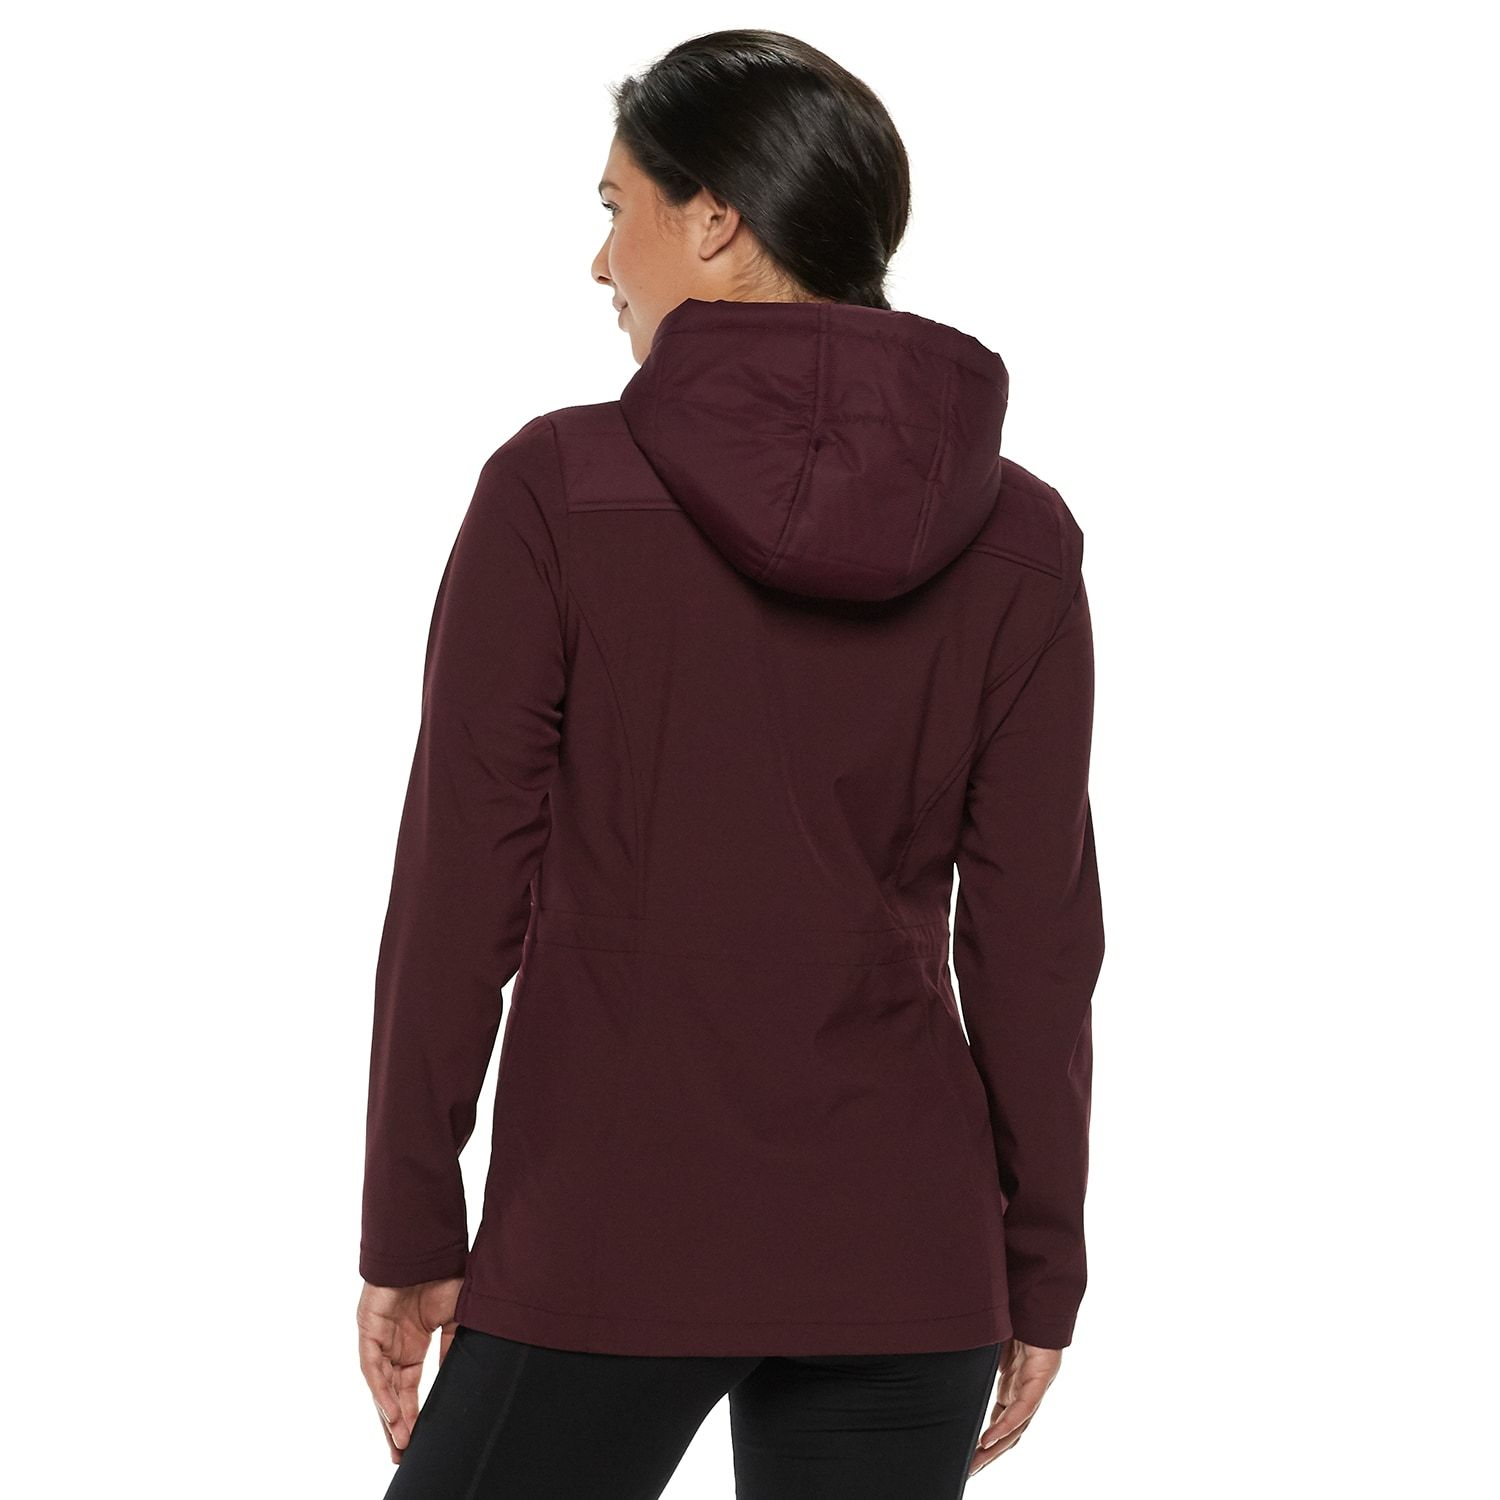 c9c50d43 Women's New Balance Hooded Soft Shell Puffer Jacket in 2019 ...